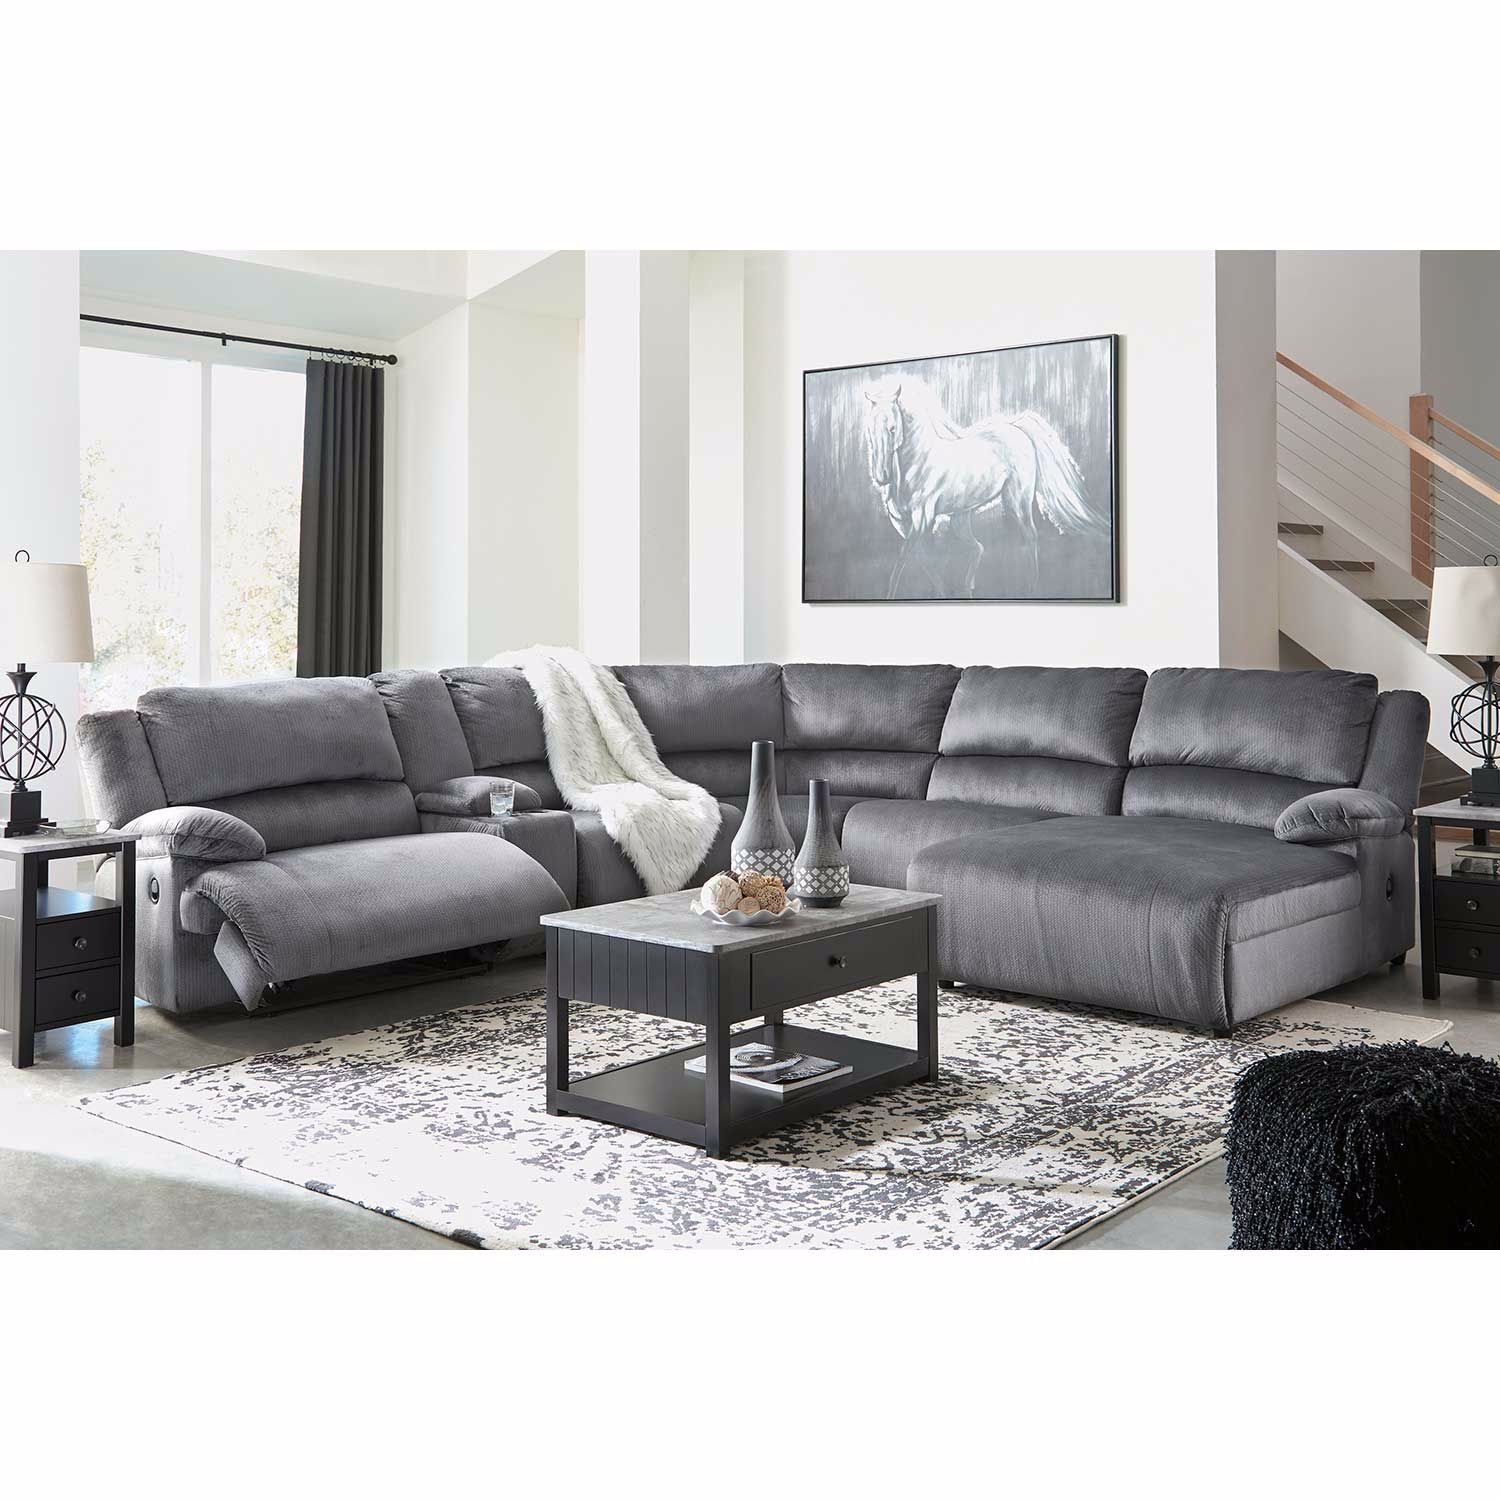 Picture of Clonmel 6 Piece Power Reclining Sectional with RAF Chaise